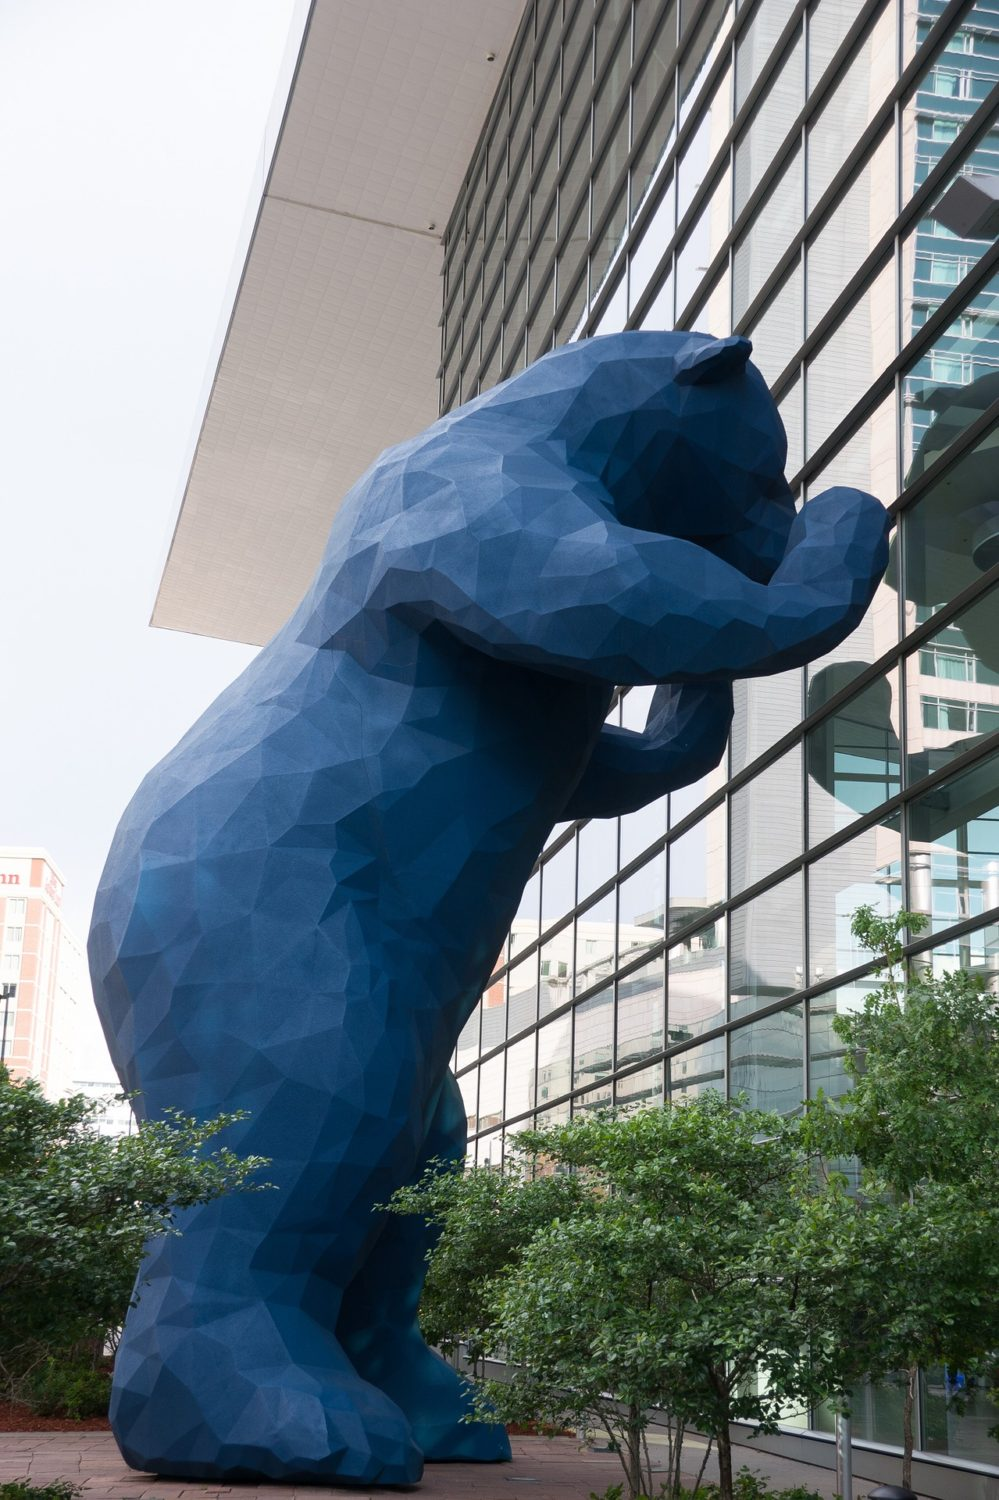 Big Blue Bear at Colorado Convention Center, Denver, Colorado